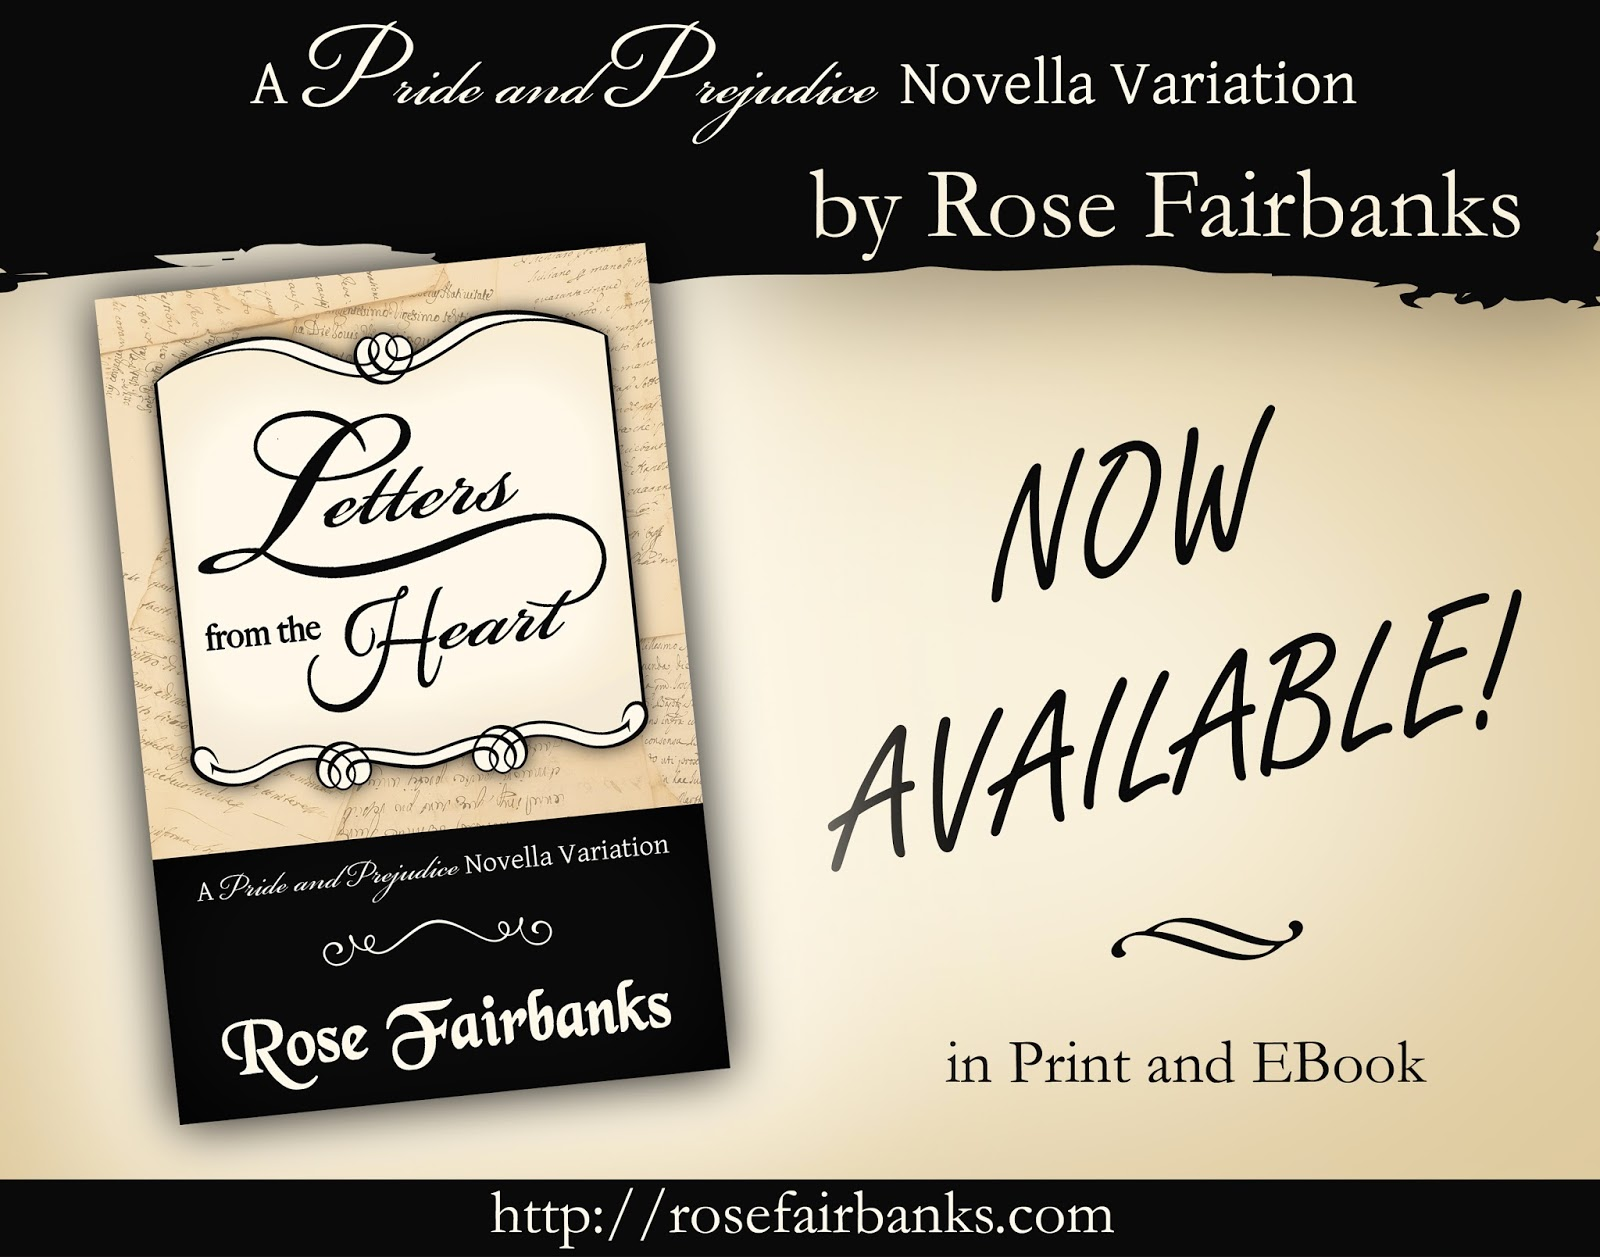 Now available - Letters from the Heart by Rose Fairbanks